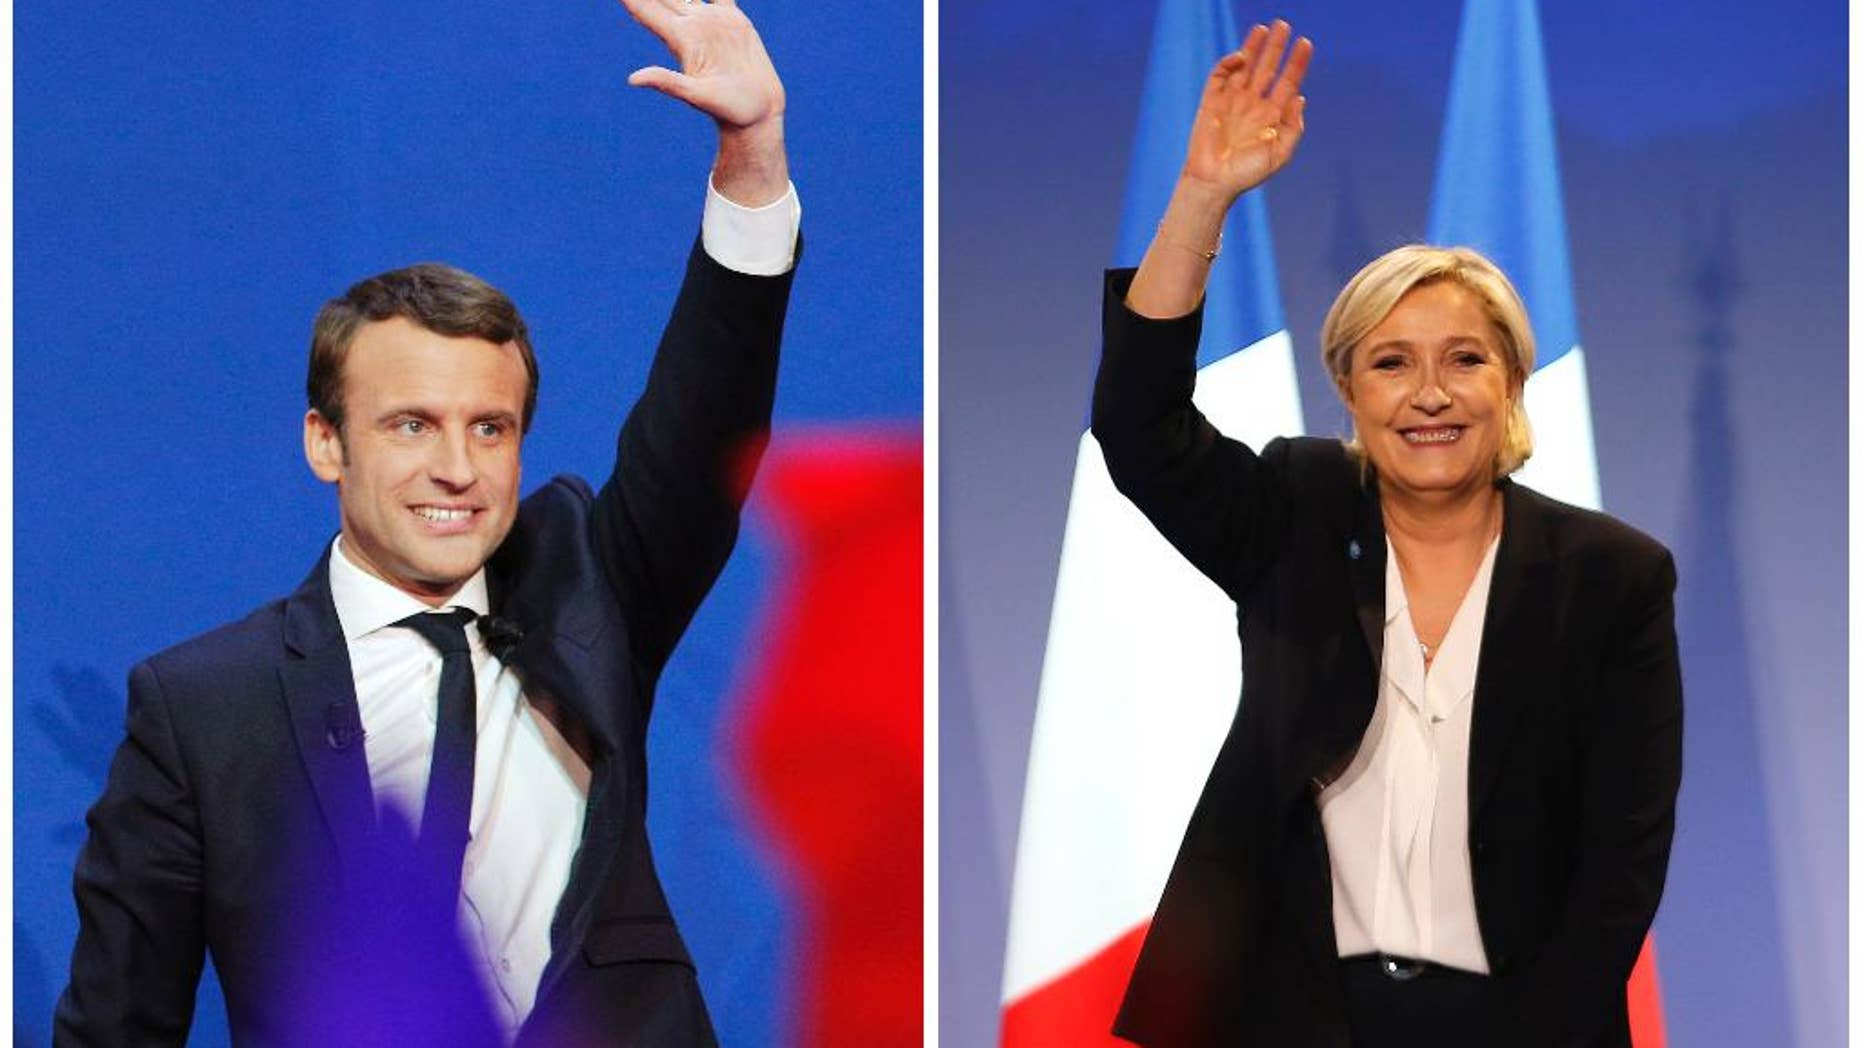 In this photo combination, French centrist presidential candidate Emmanuel Macron waves before he addresses his supporters at his election day headquarters in Paris, Sunday April 23, 2017, left, and far-right candidate for the presidential election Marine Le Pen waves at supporters after she delivers a speech during a meeting in Bordeaux, southwestern France, Sunday, April 2, 2017, right. (AP Photo/ Christophe Ena/ Bob Edme)